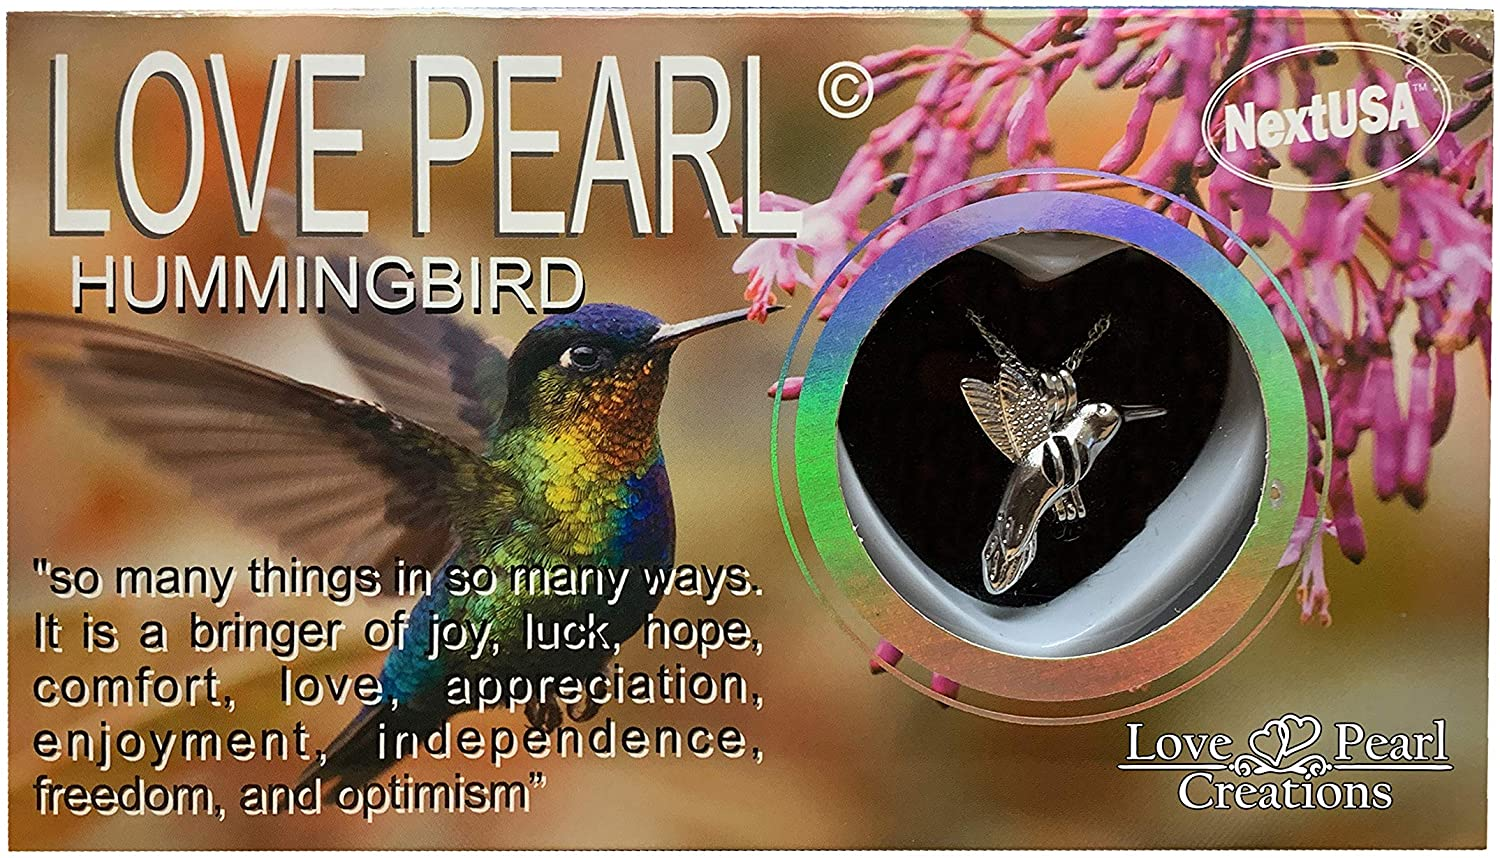 Love Pearl Creations Animals Wish Kit with Pendant Necklace (Humming Bird)